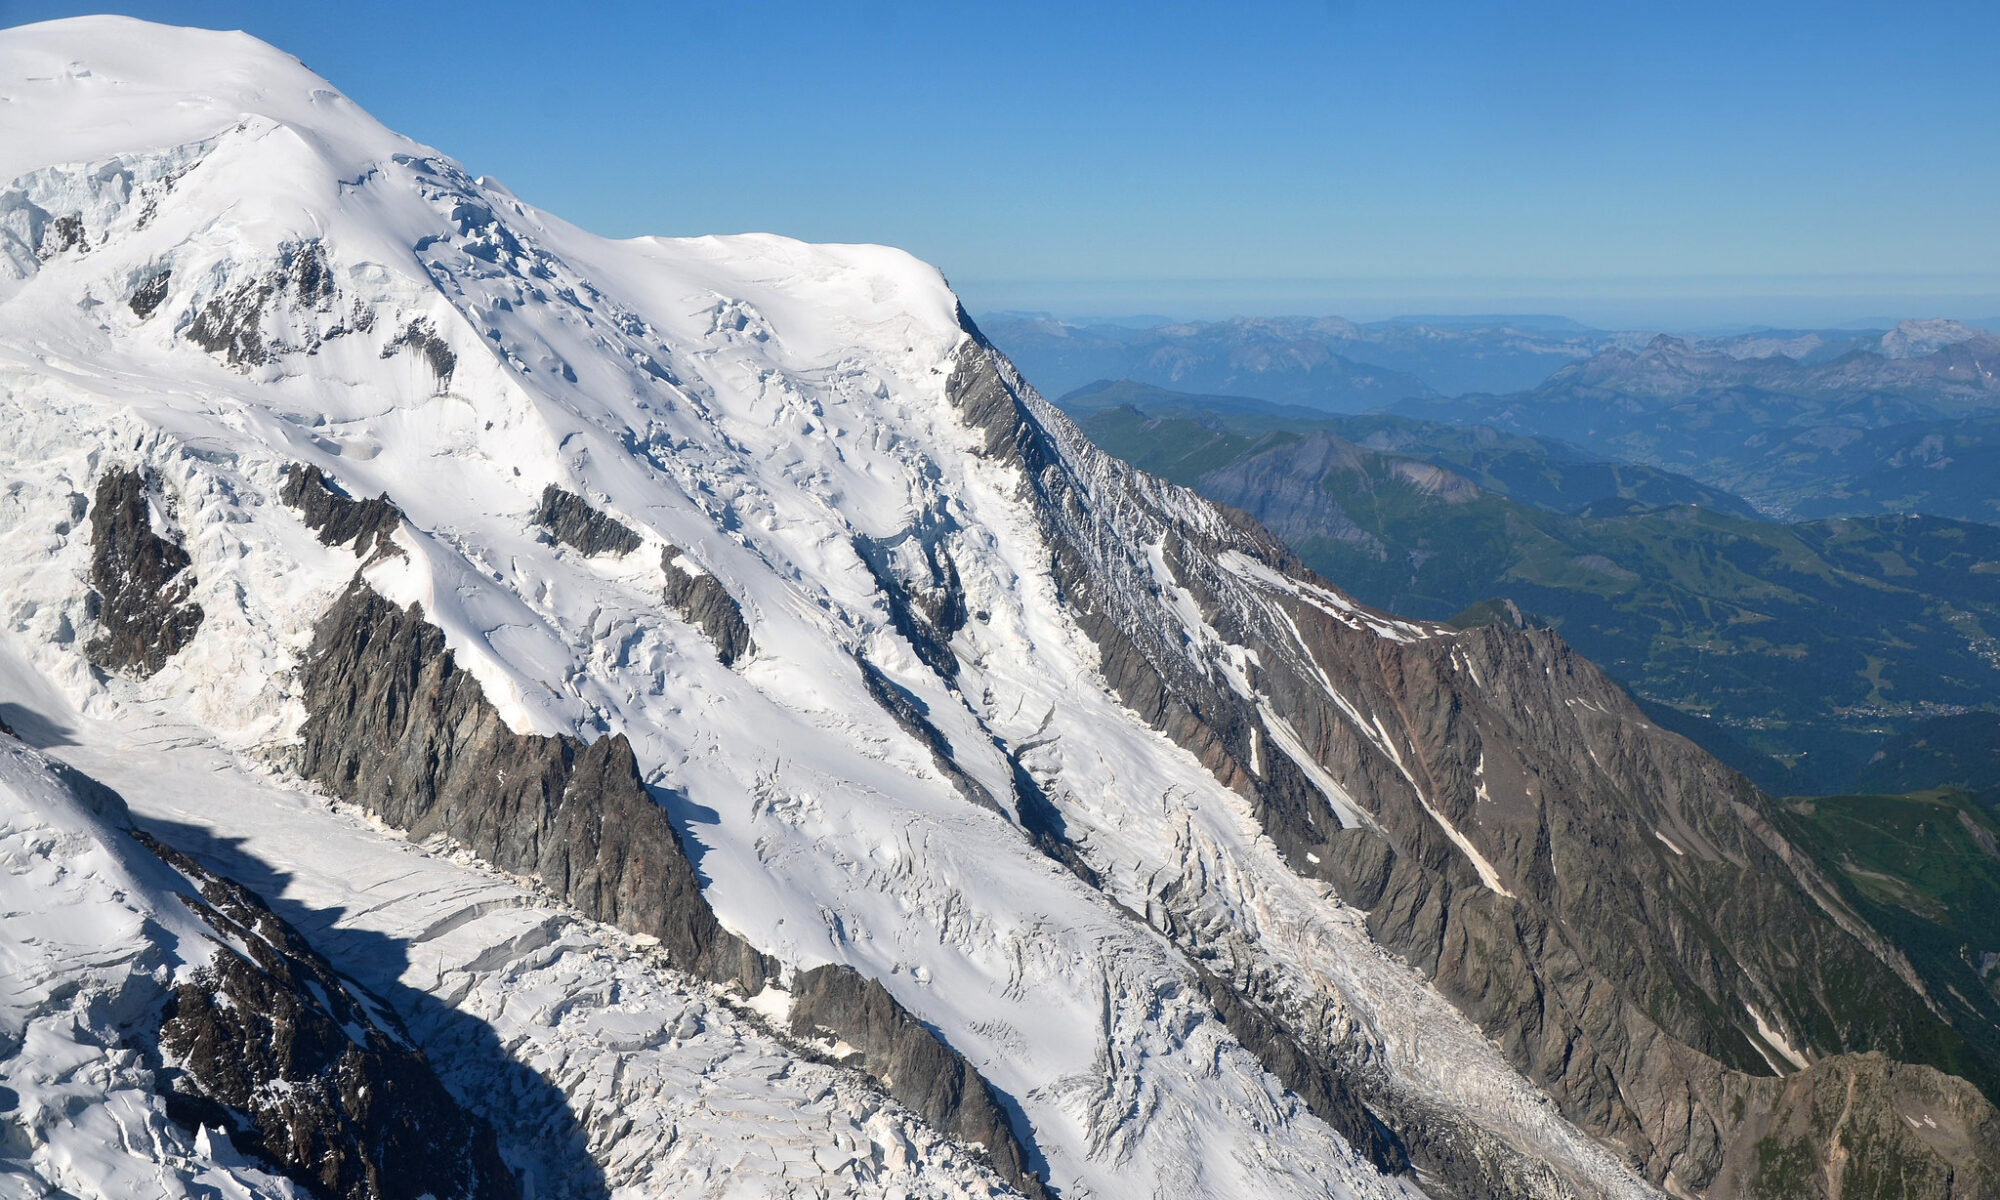 Alps from Aiguille du Midi (SW) by Tony Fernandez. Creative Commons licenced photo on Flickr